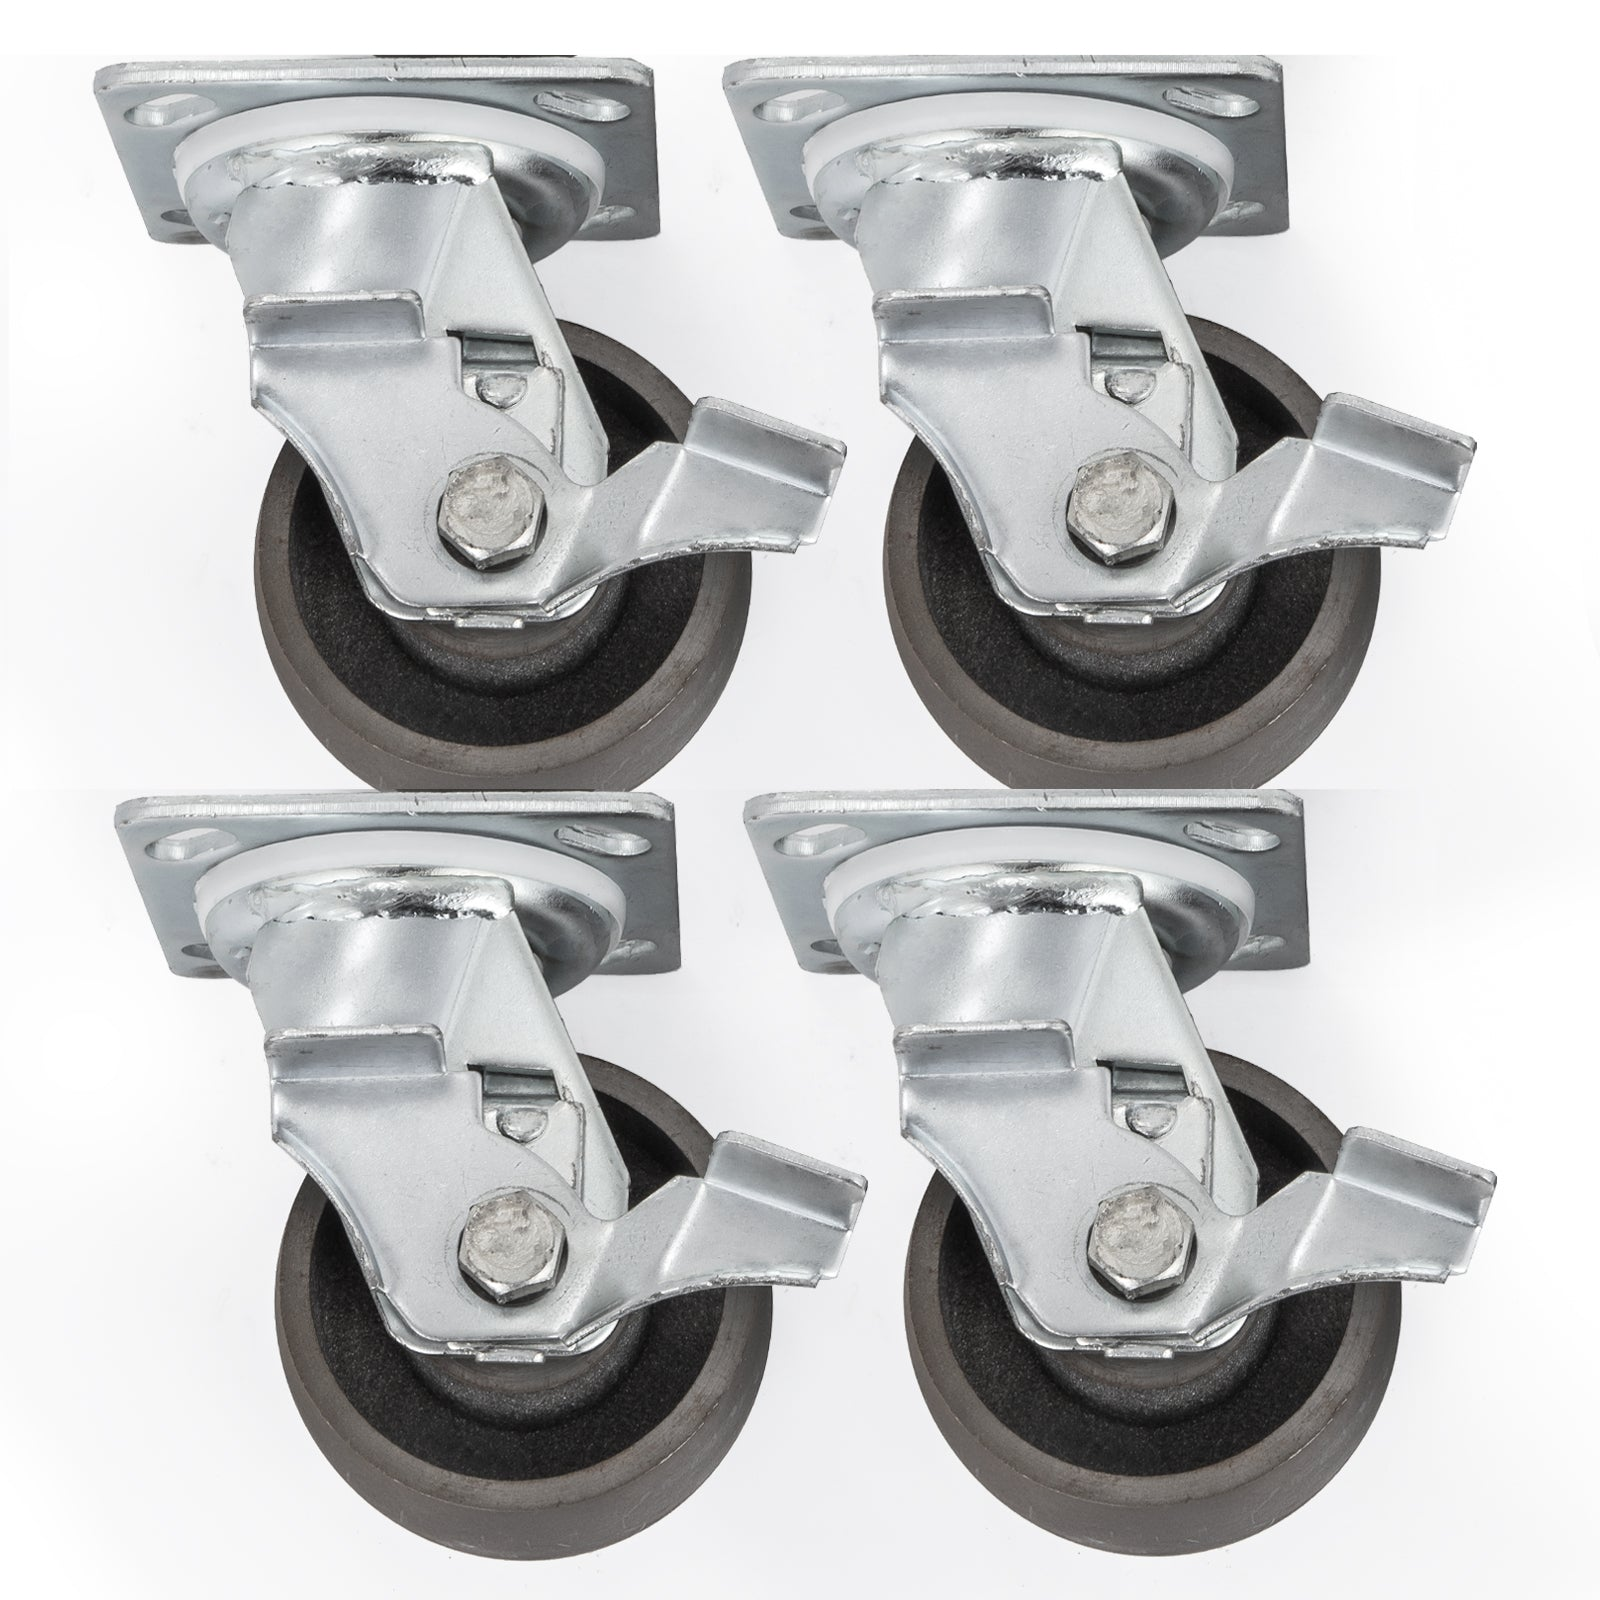 "4"" Heavy Duty Semi Steel Cast Iron Swivel Casters - 4,000 Lb Capacity Set Of 4"